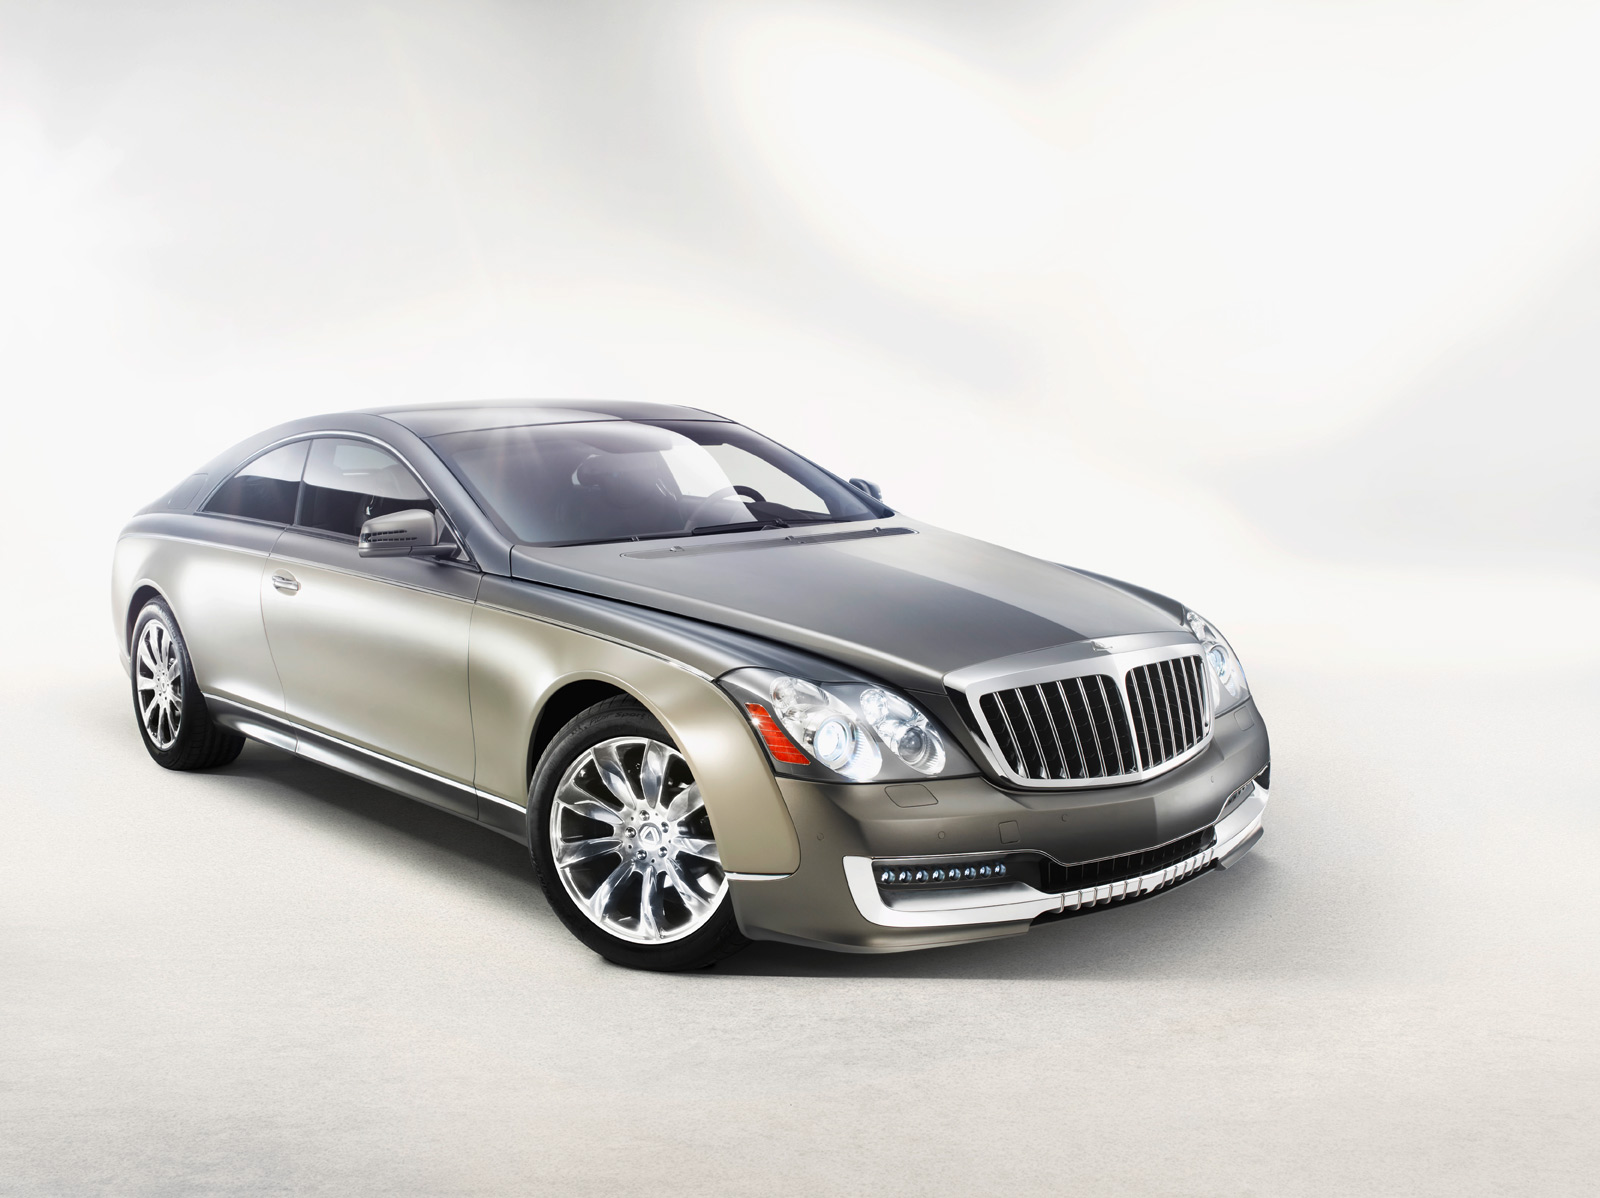 based on the Maybach 57 S